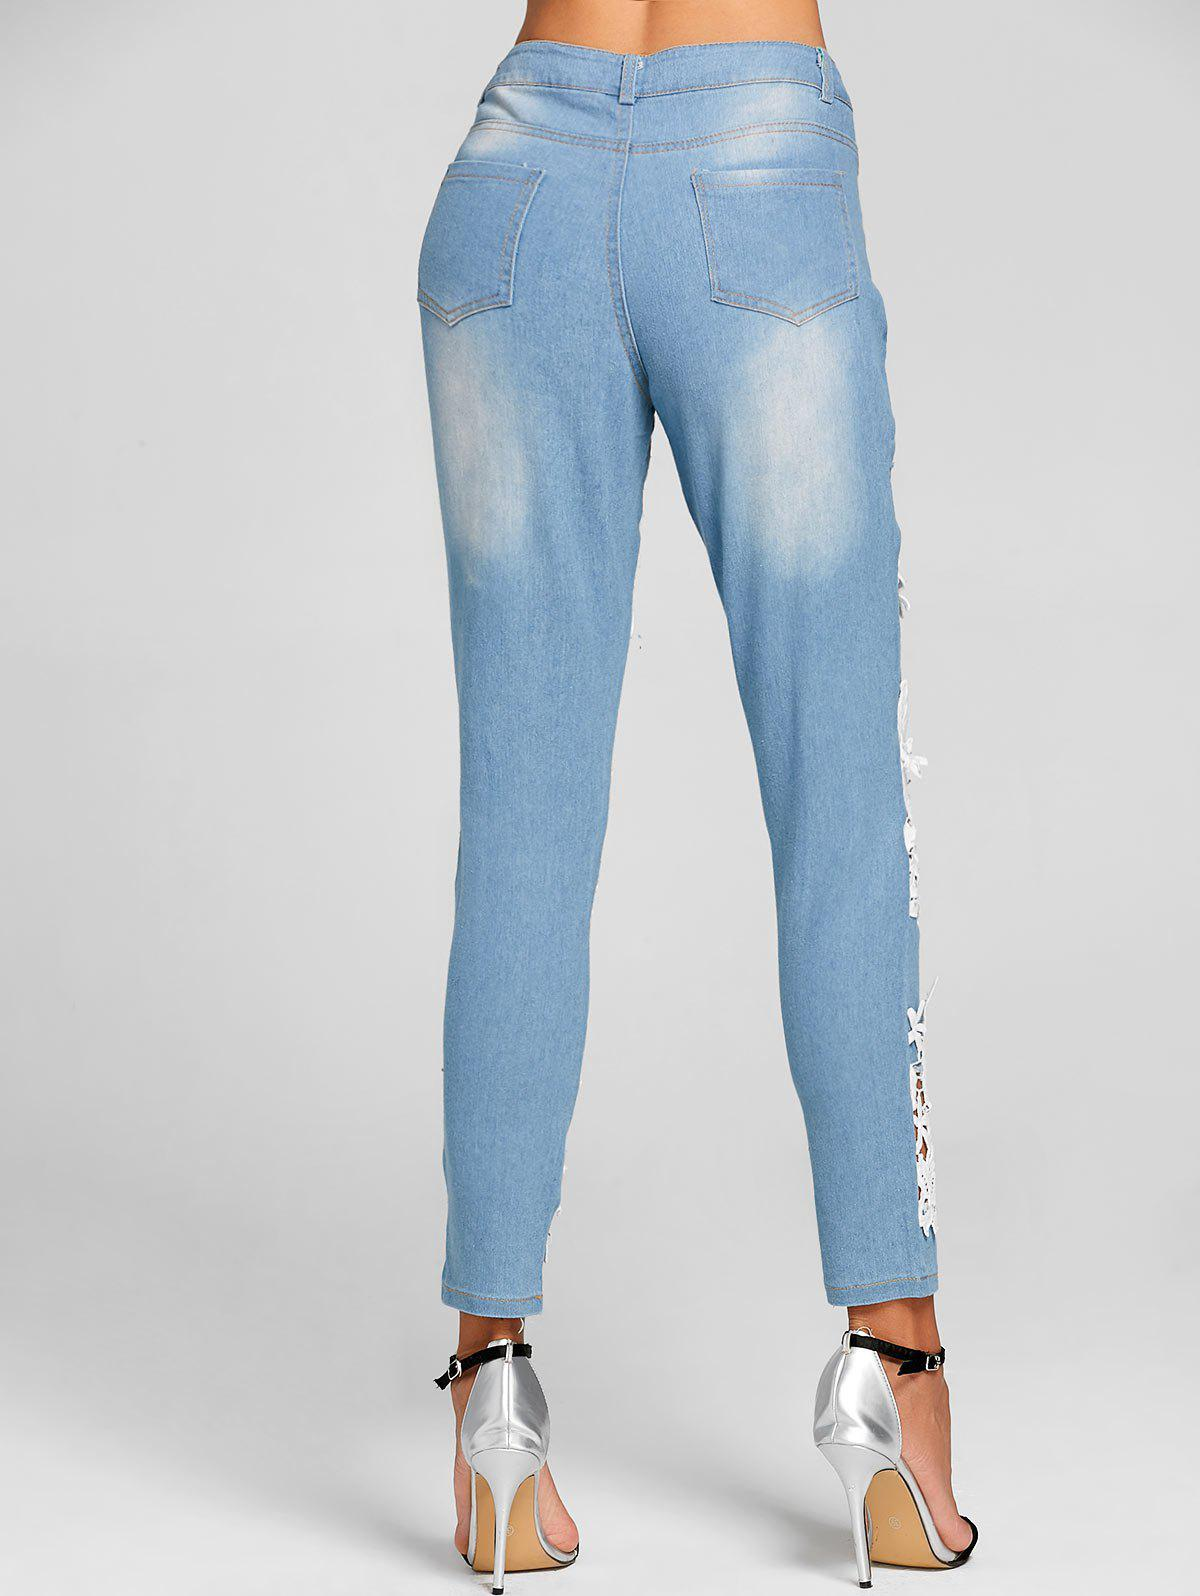 Lace Insert Hole Skinny Destroyed Jeans - CLOUDY XL